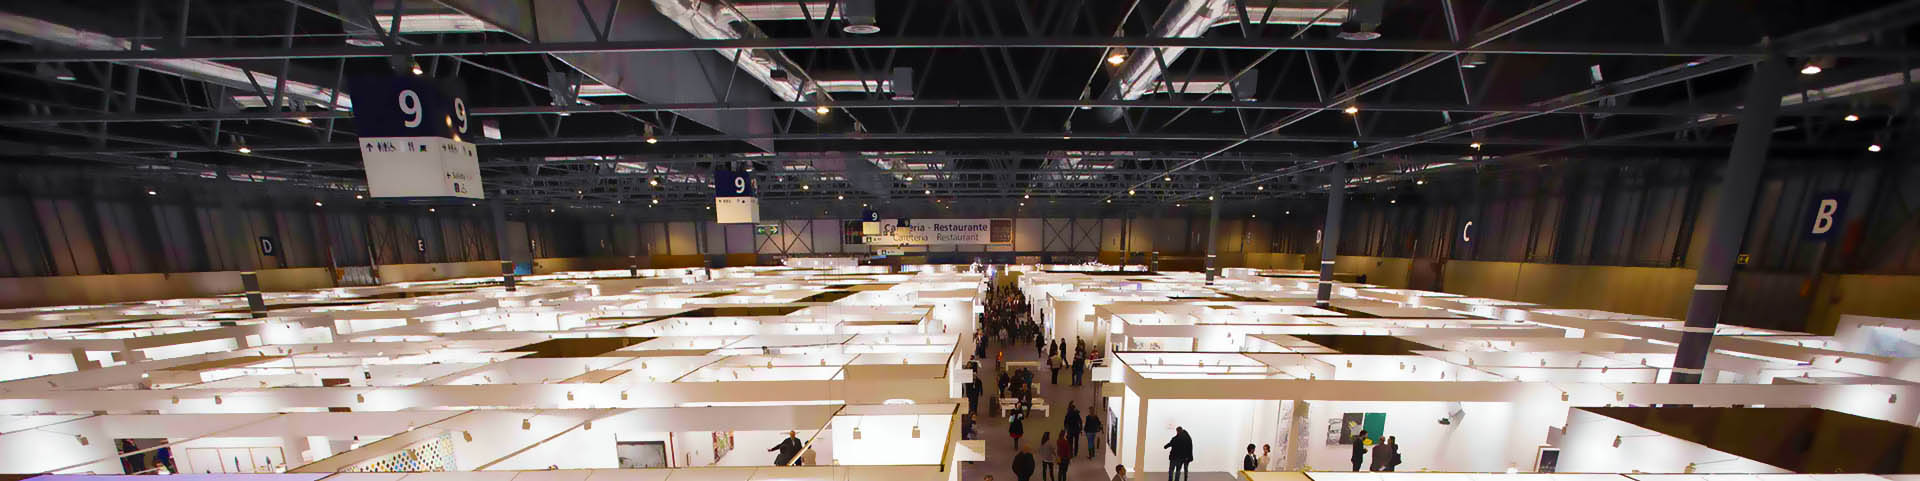 Art Fair Madrid Spain